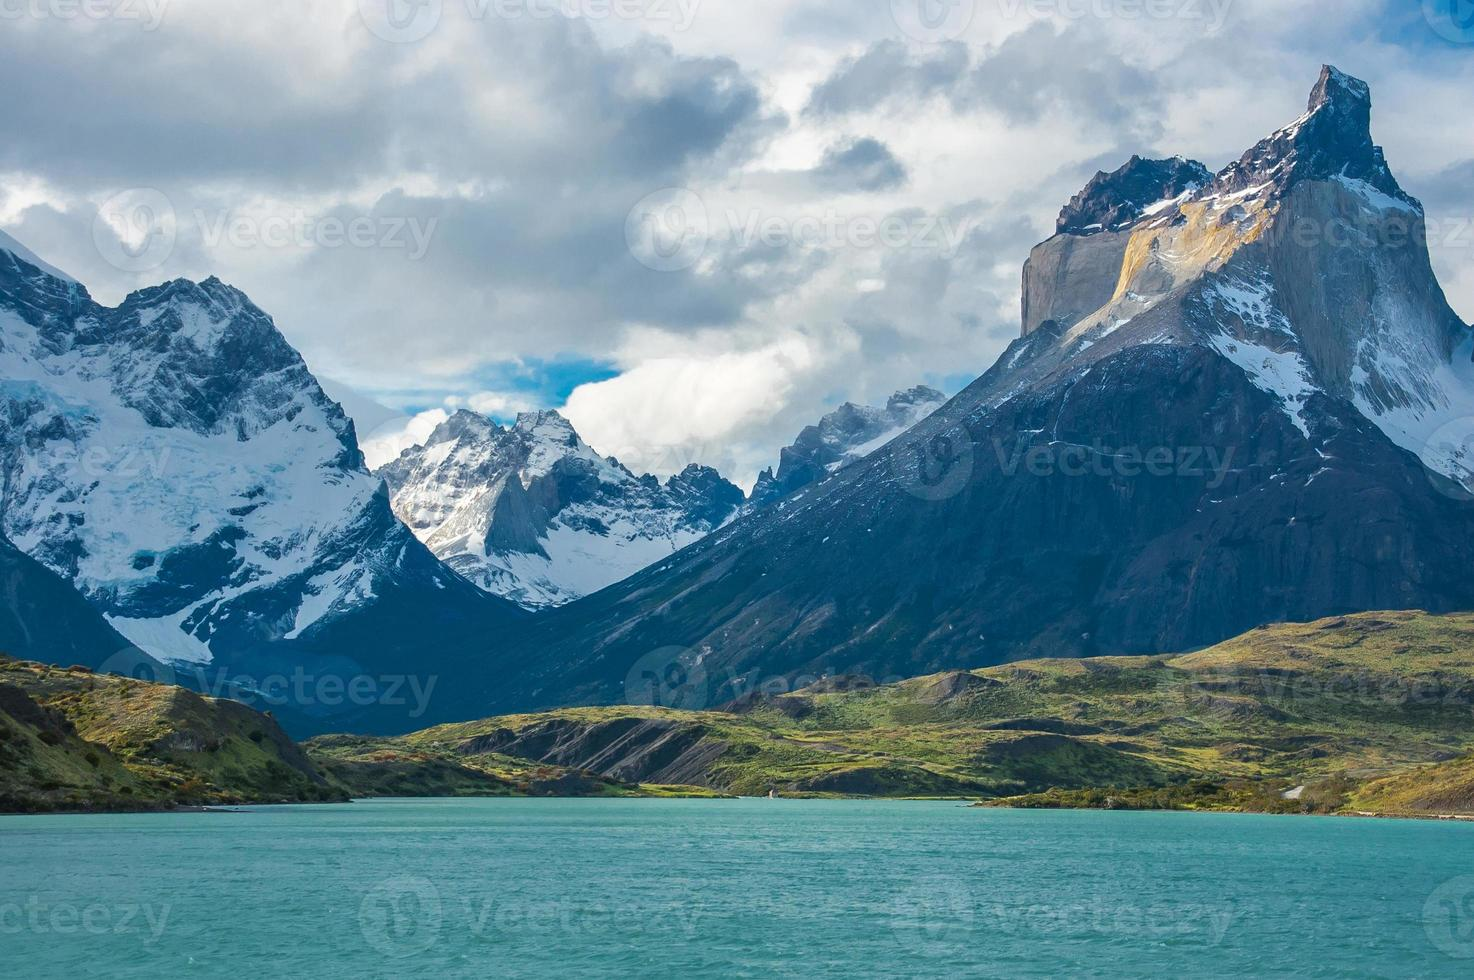 Soaring Cuernos del Paine across turquoise Grey Lake, Chile photo